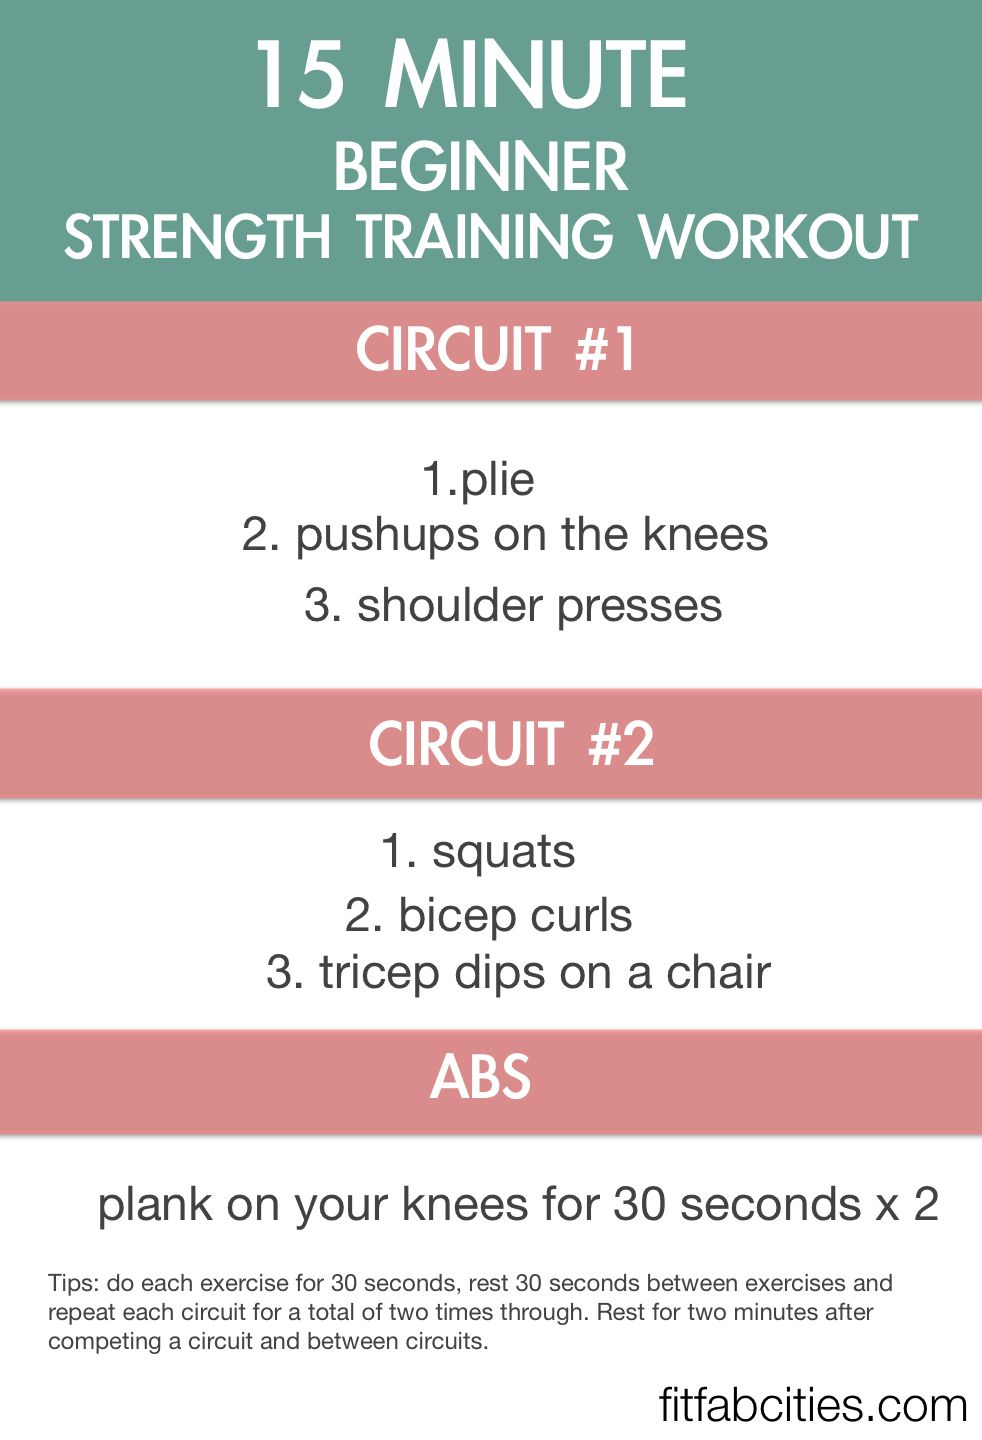 Workout Routine For Beginners At Home